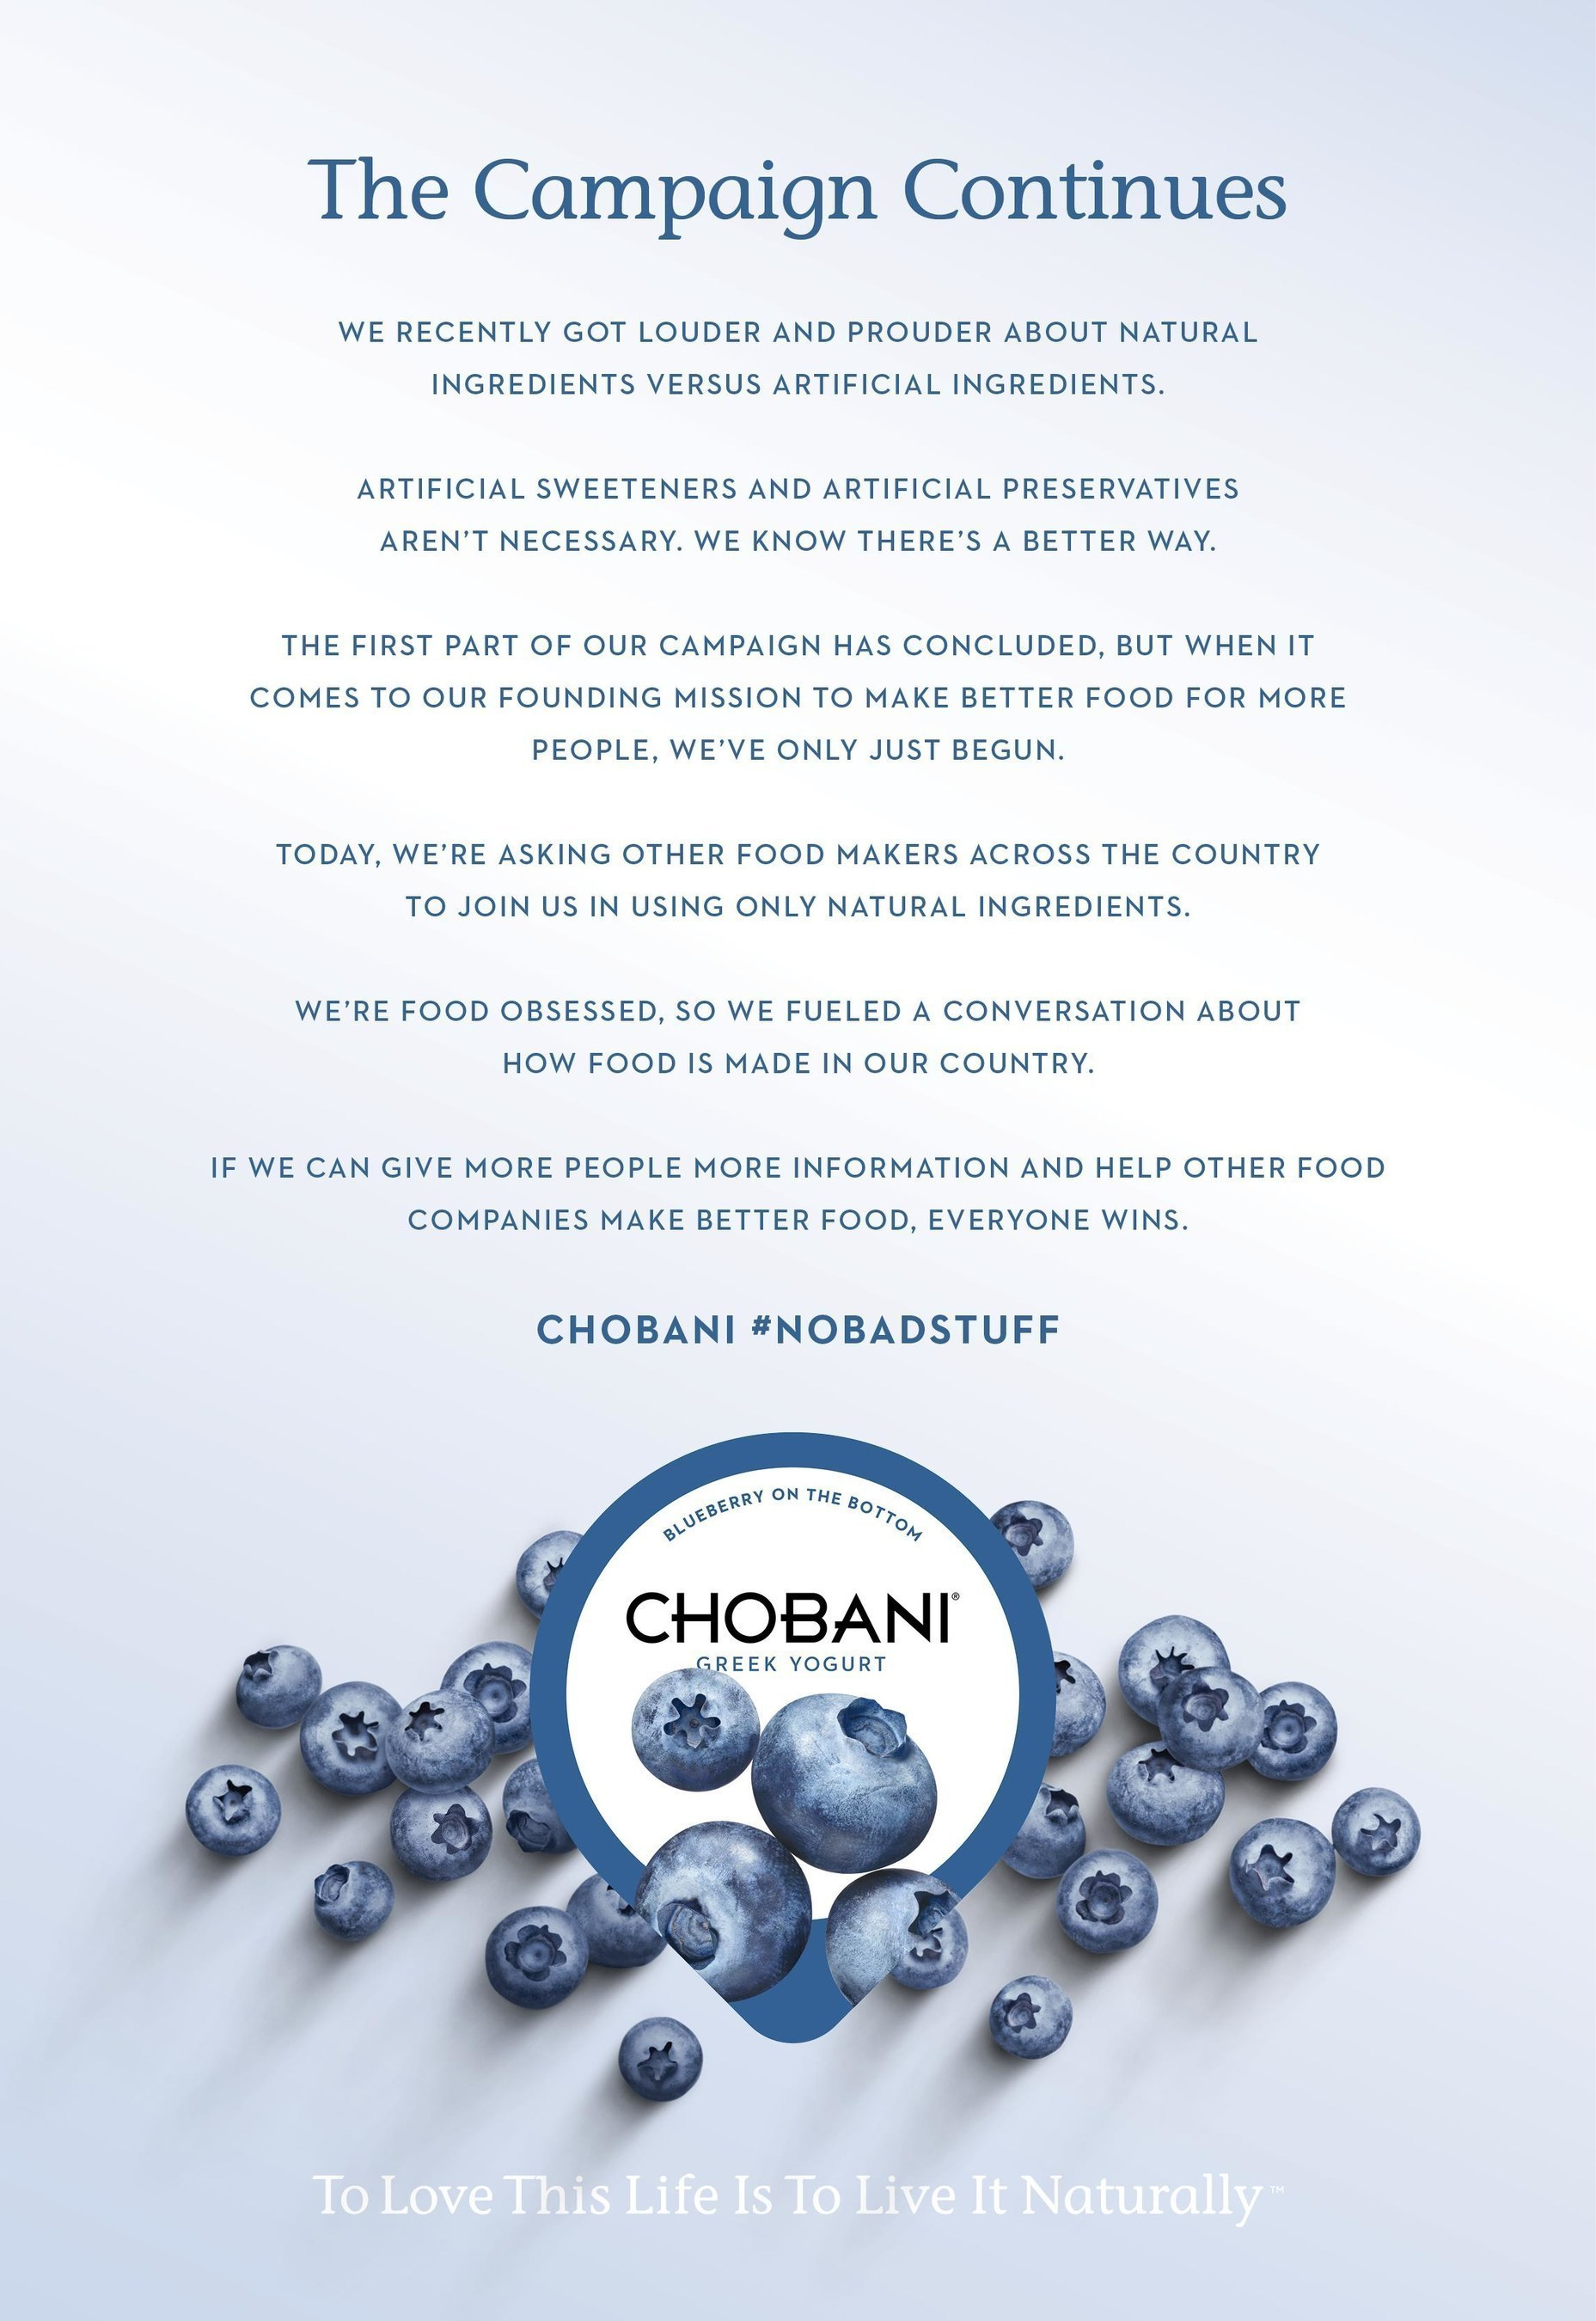 Chobani asks food makers across the country to join it in using only natural ingredients via social media.